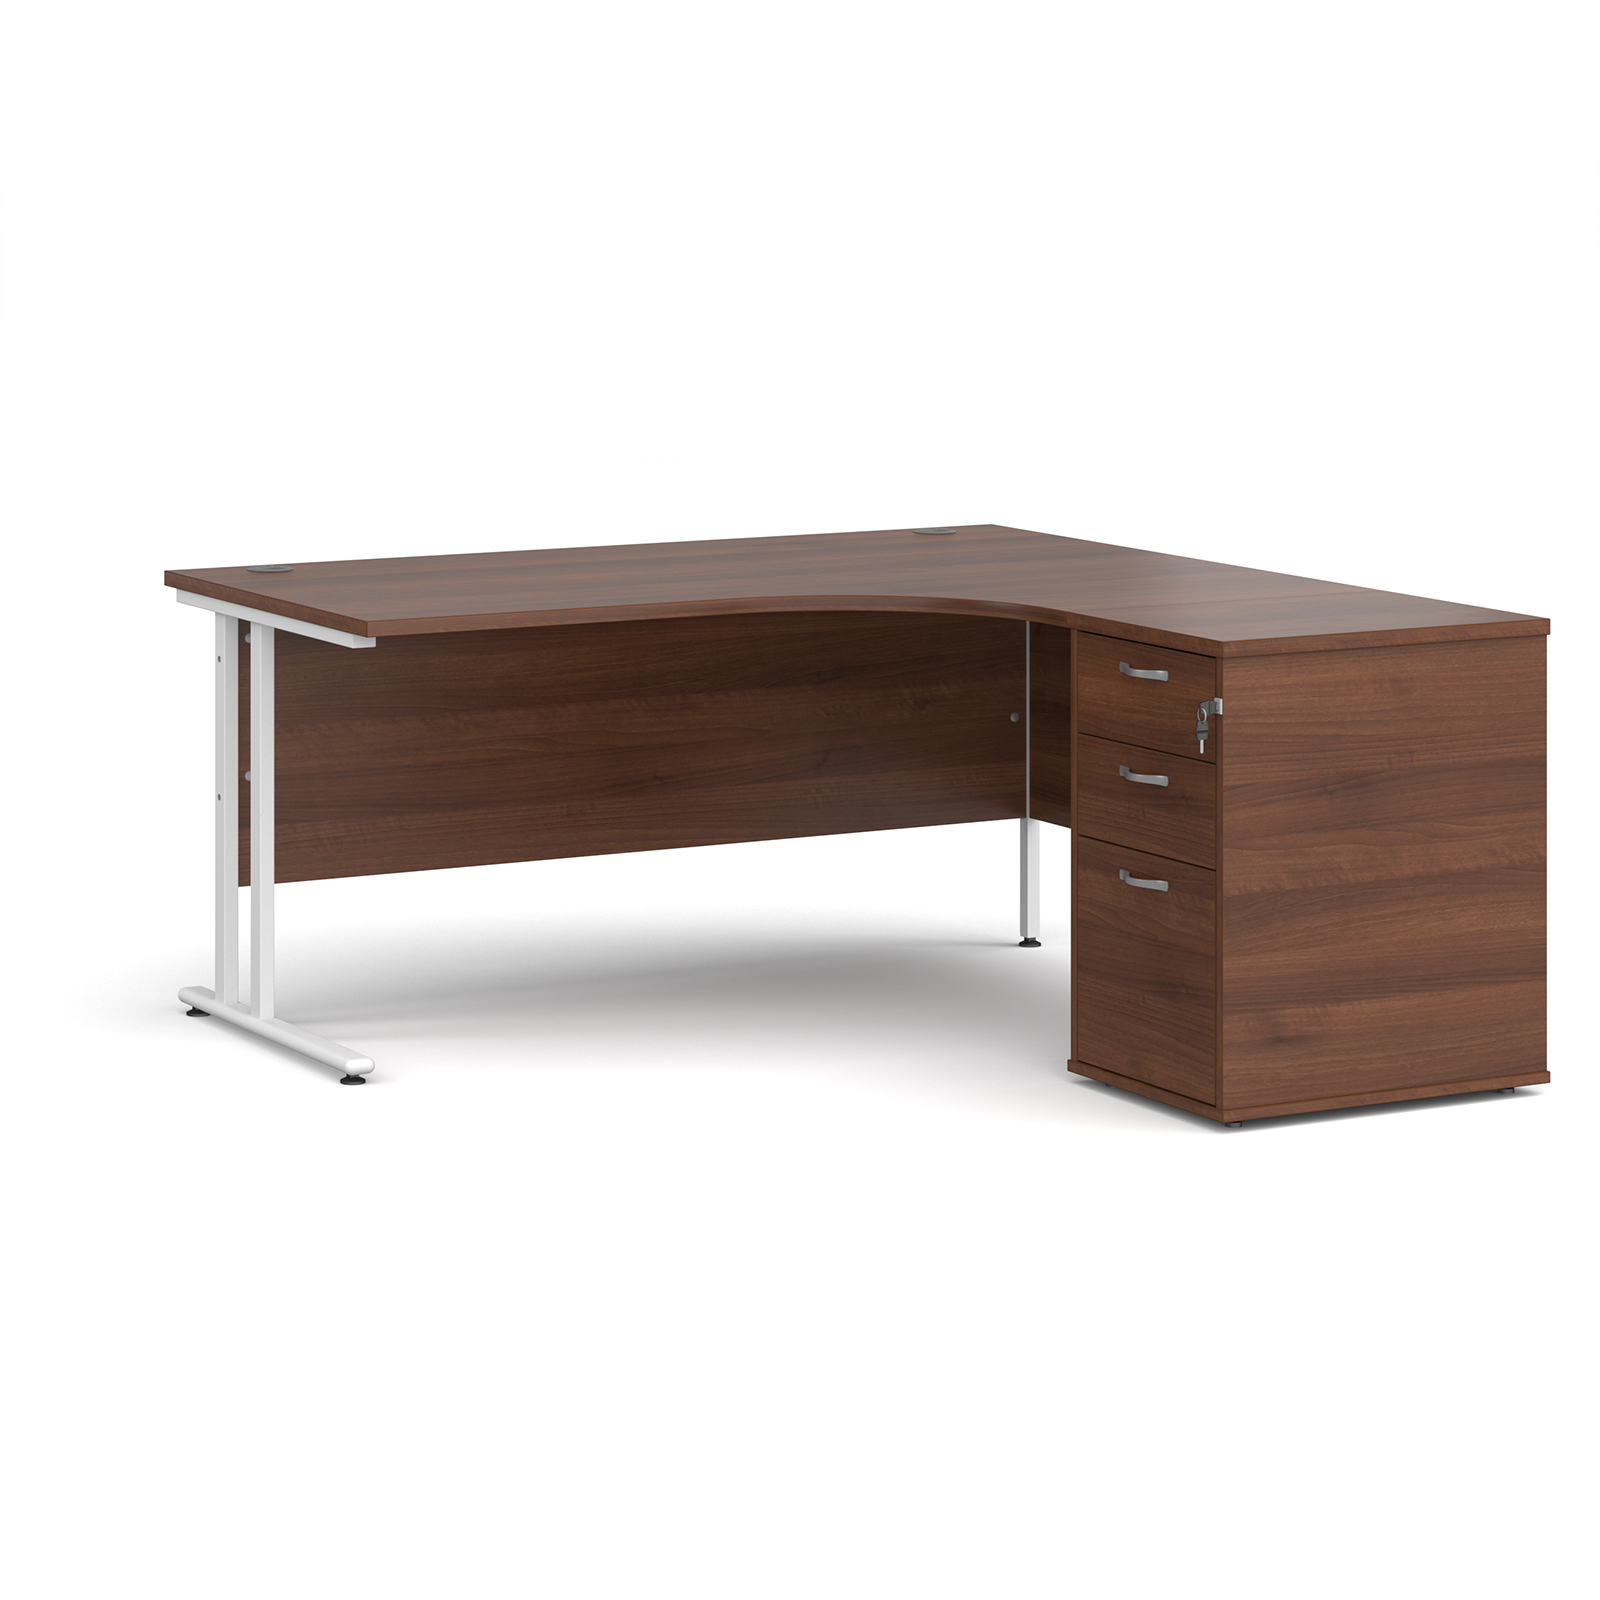 Right Handed Maestro 25 right hand ergonomic desk 1600mm with white cantilever frame and desk high pedestal - walnut